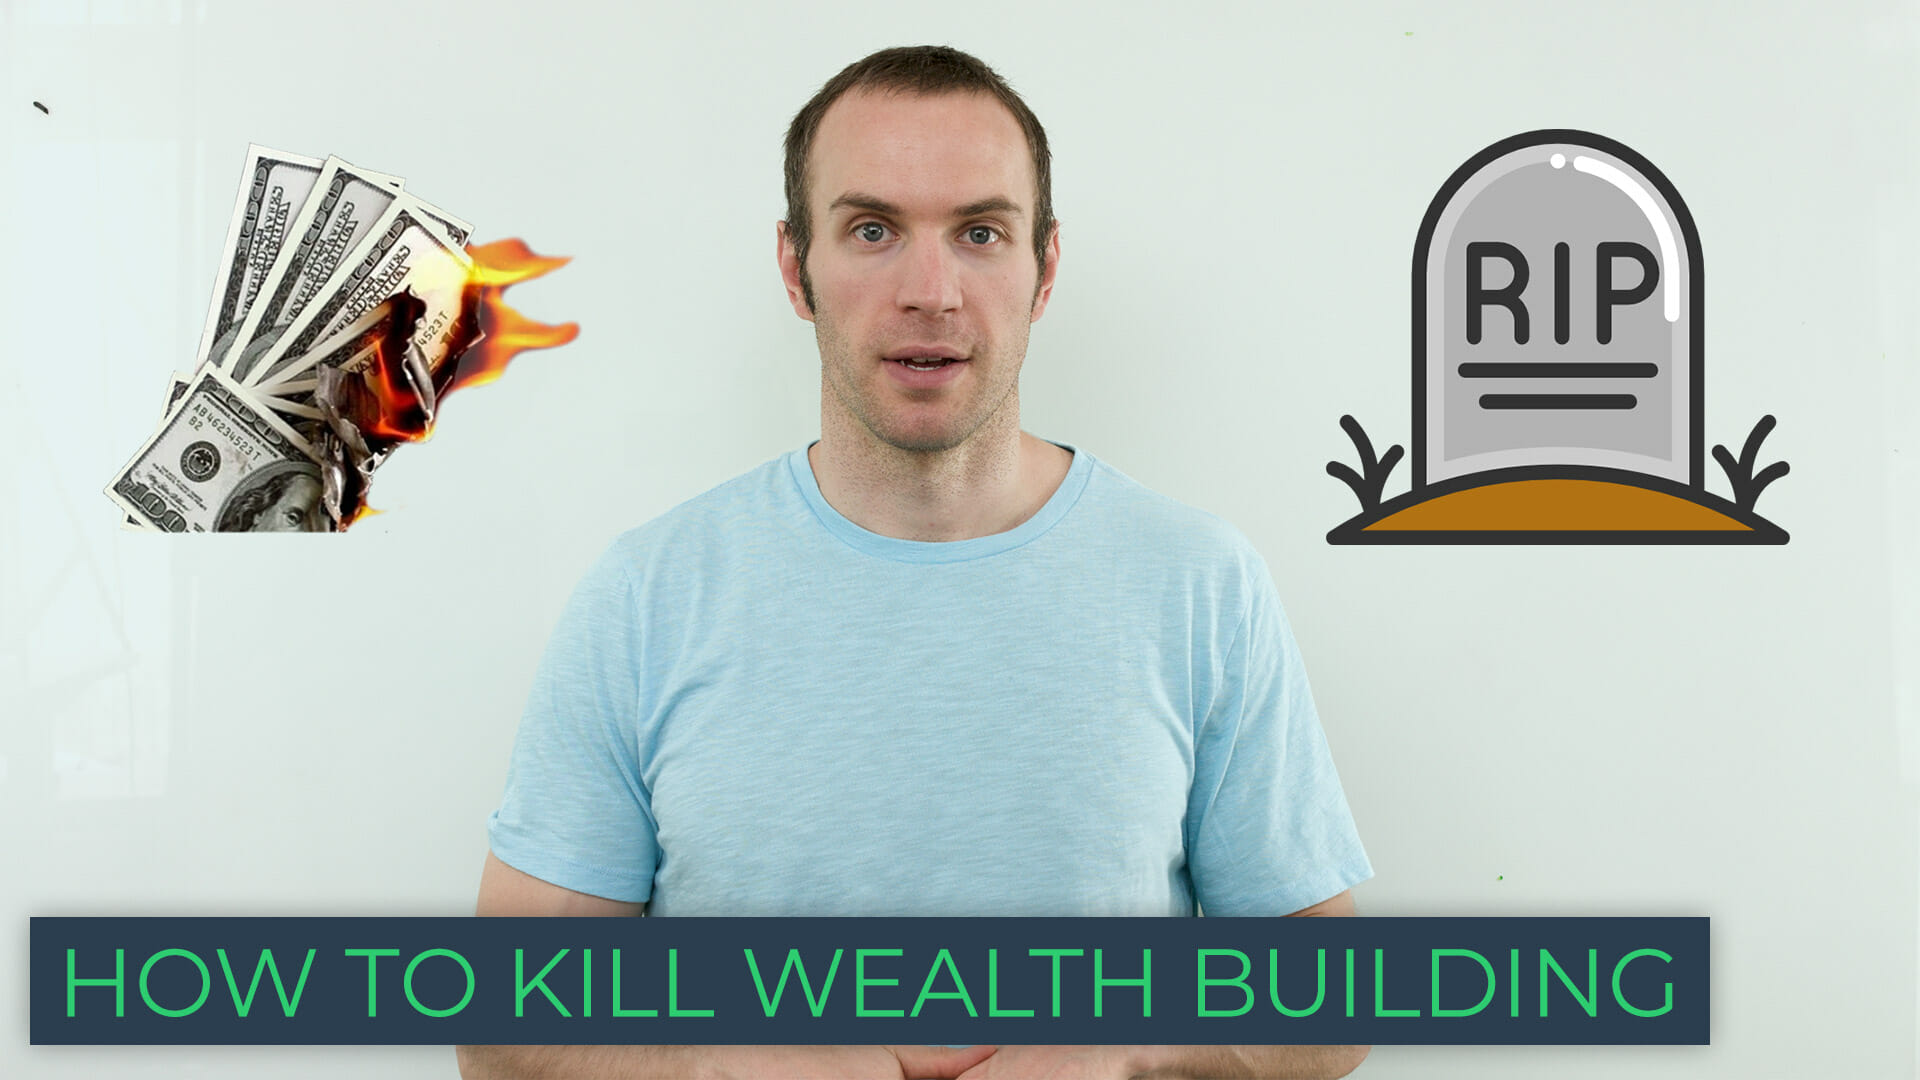 How to Kill Wealth Building